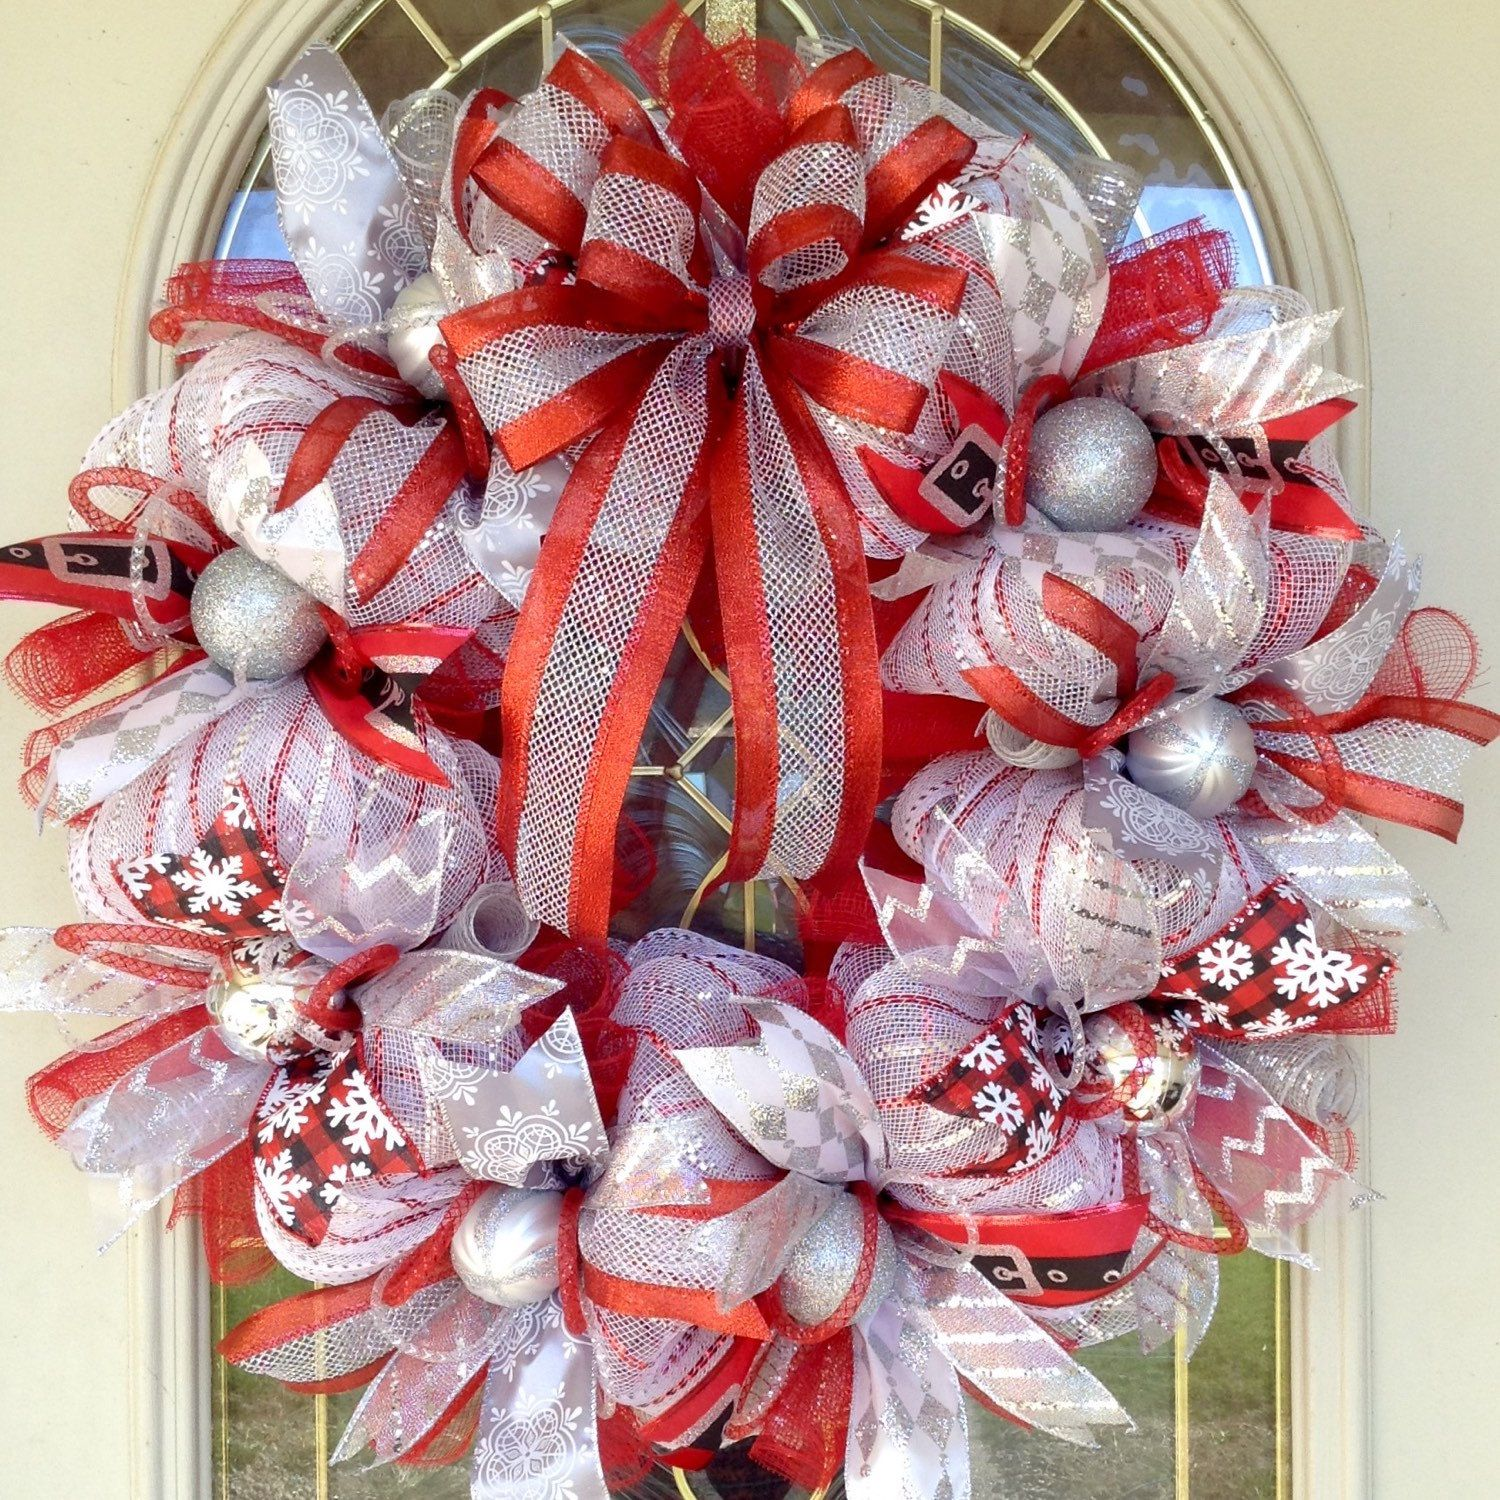 Large round christmas ornaments - Large 24 Round Christmas Red Silver Black And White Glitter Deco Mesh Wreath